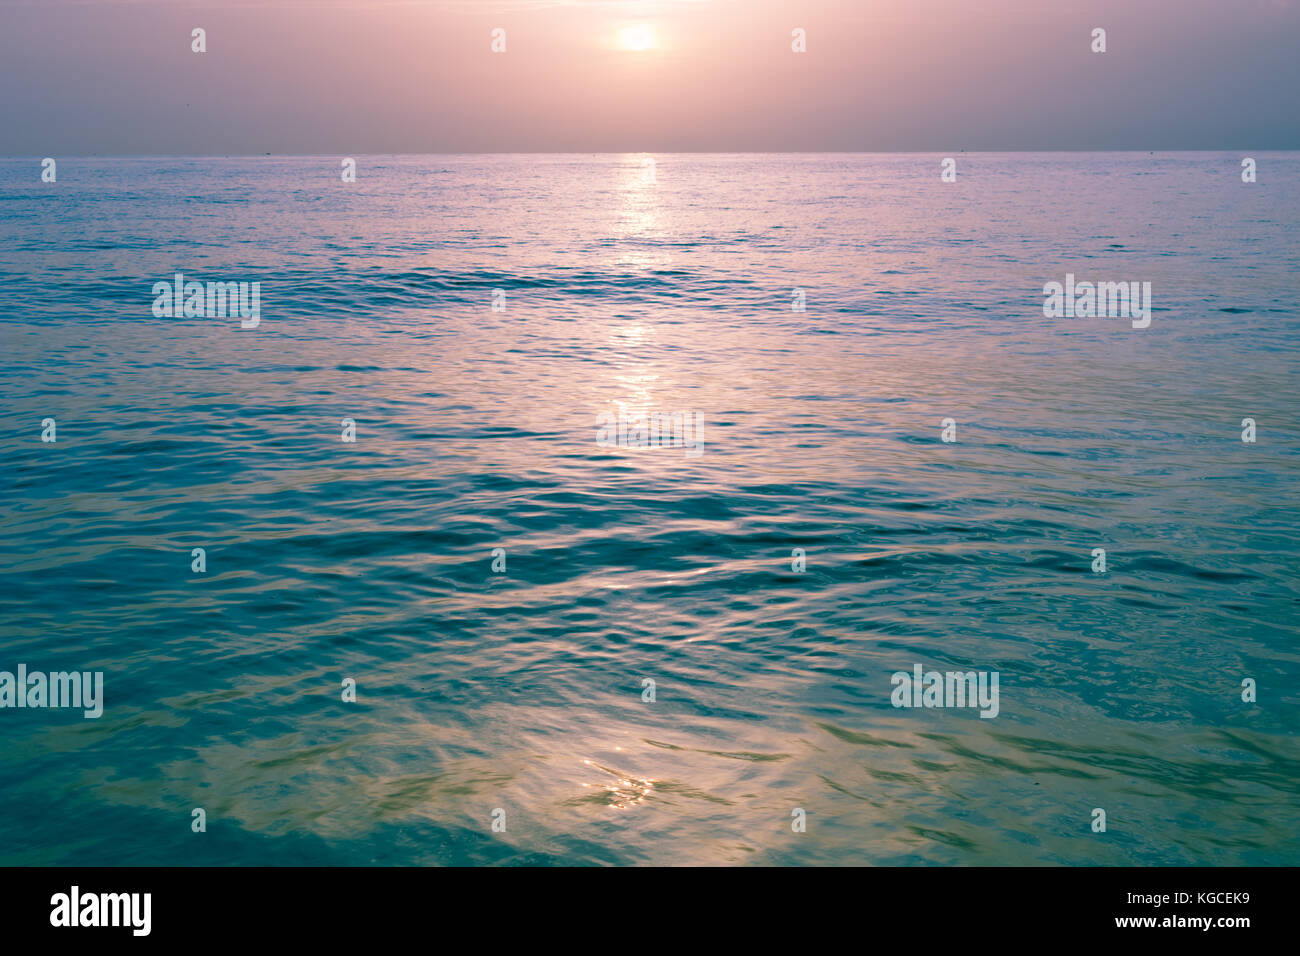 pastel colors in the sky and reflecting on the flat ocean water at sunrise - Stock Image